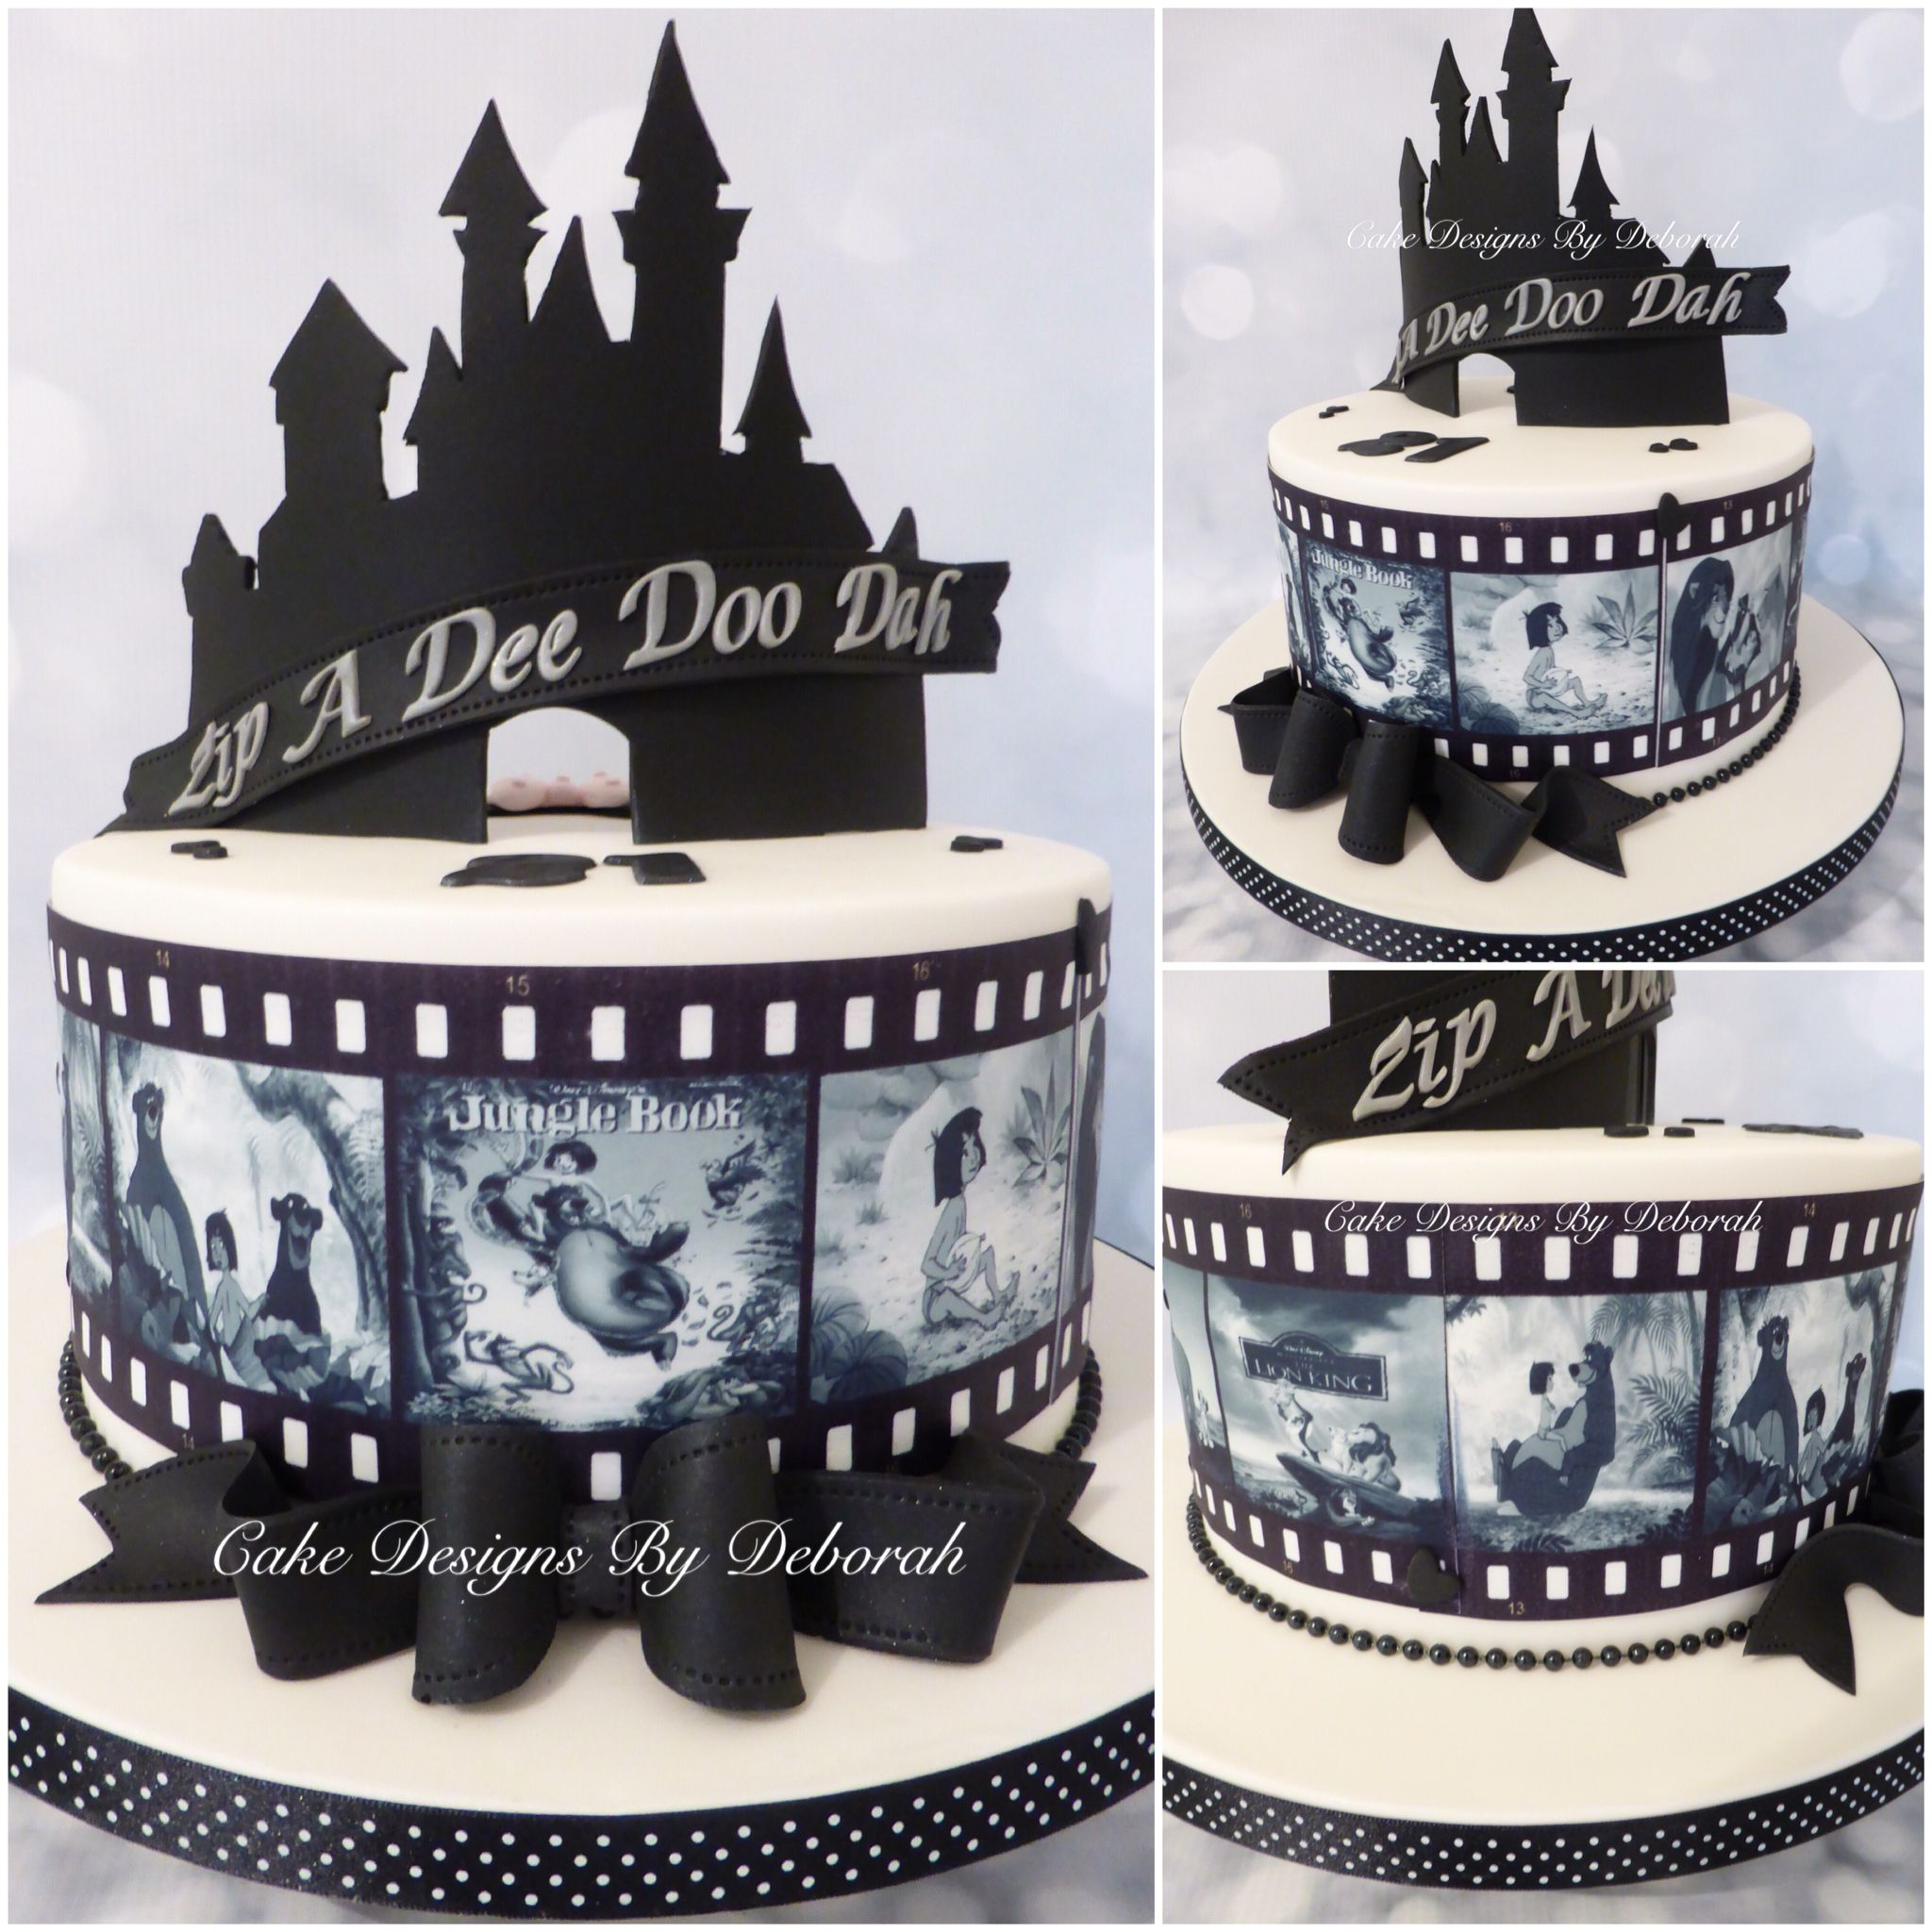 Disney Silhouette Cake 21st Birthday Cake Designs By